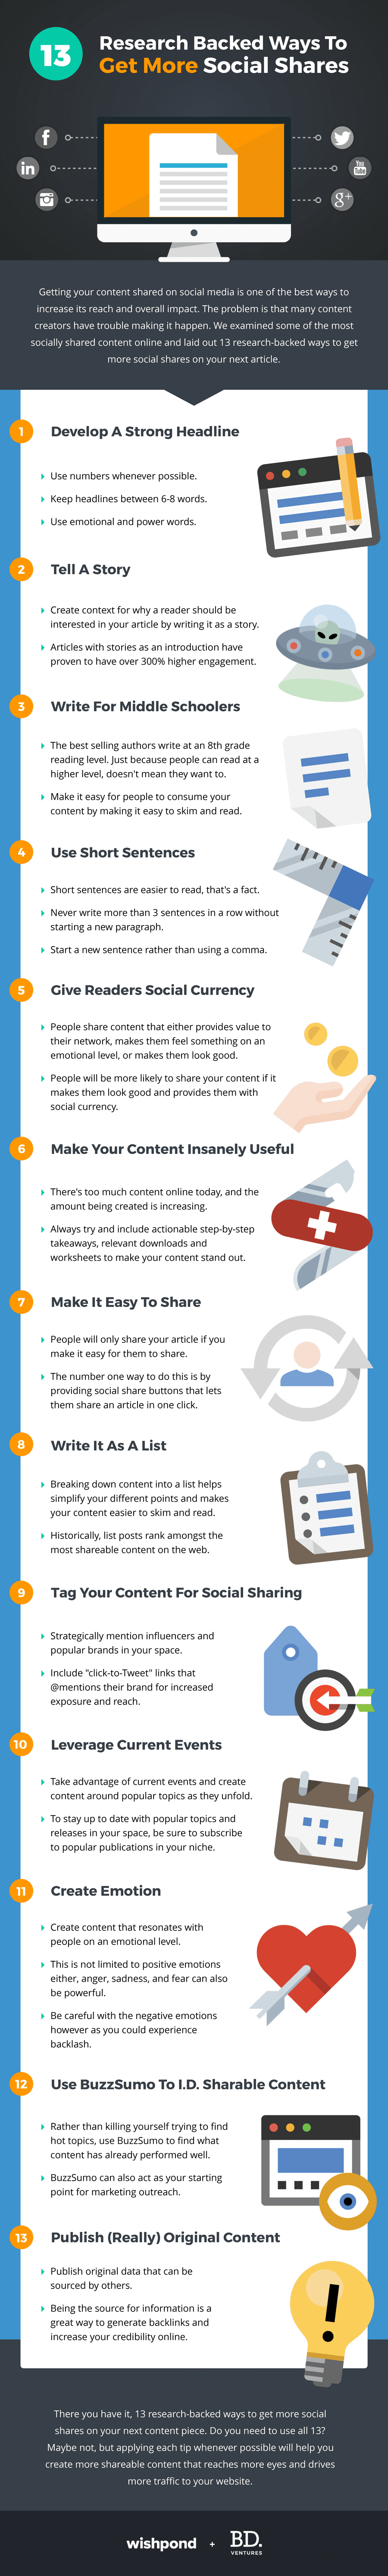 13 Research Backed Ways To Get More Social Shares #Infographic